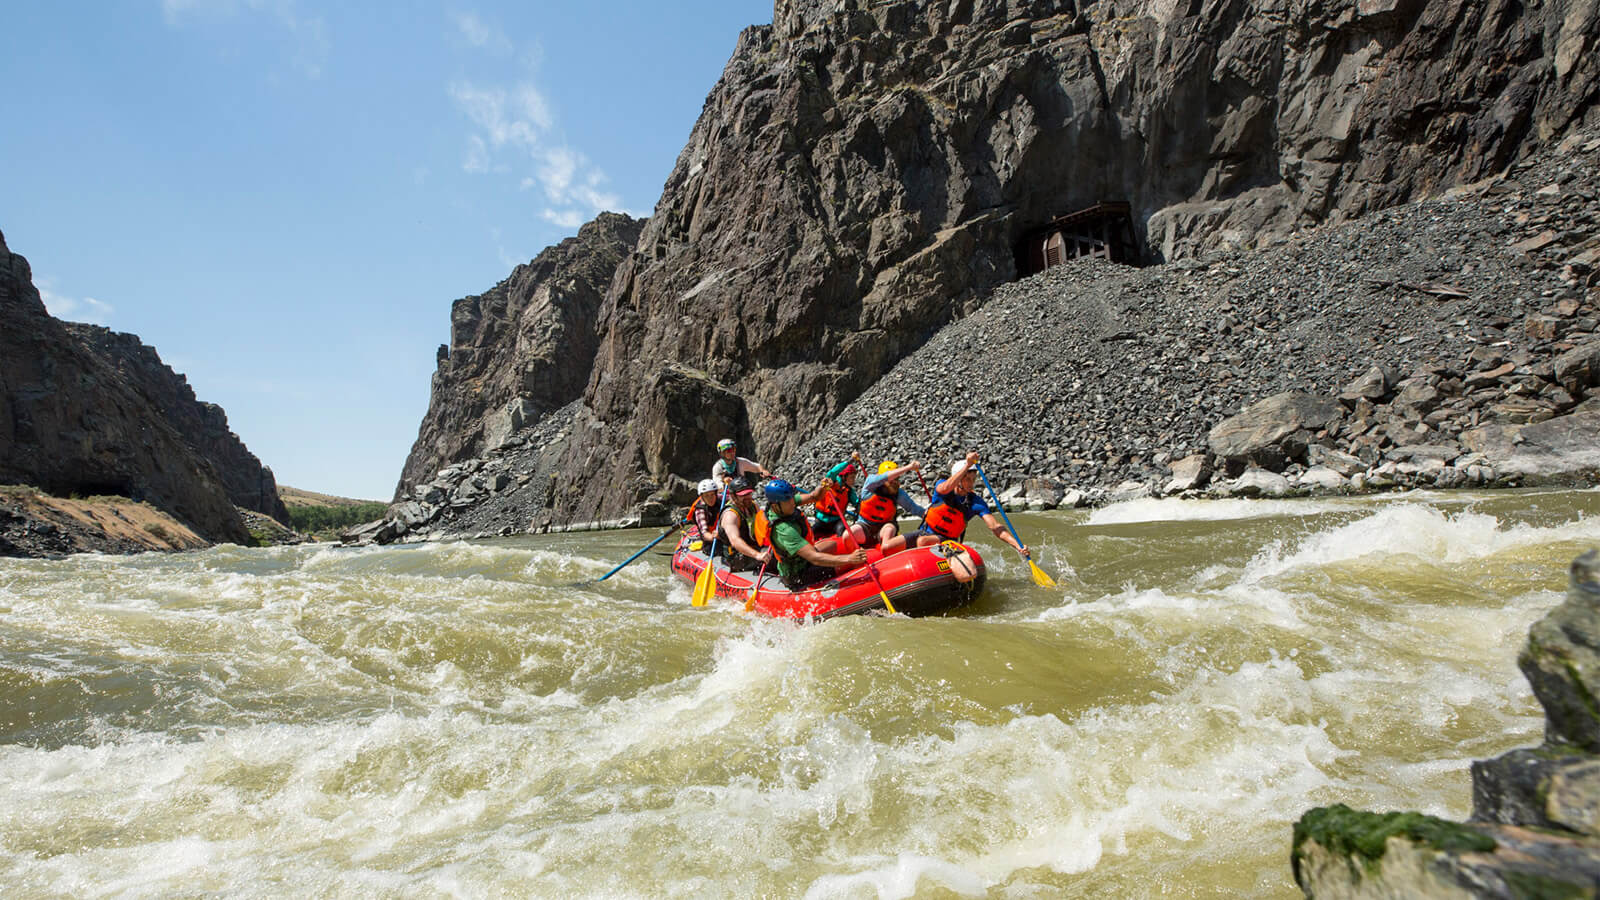 Rafters navigating white waters